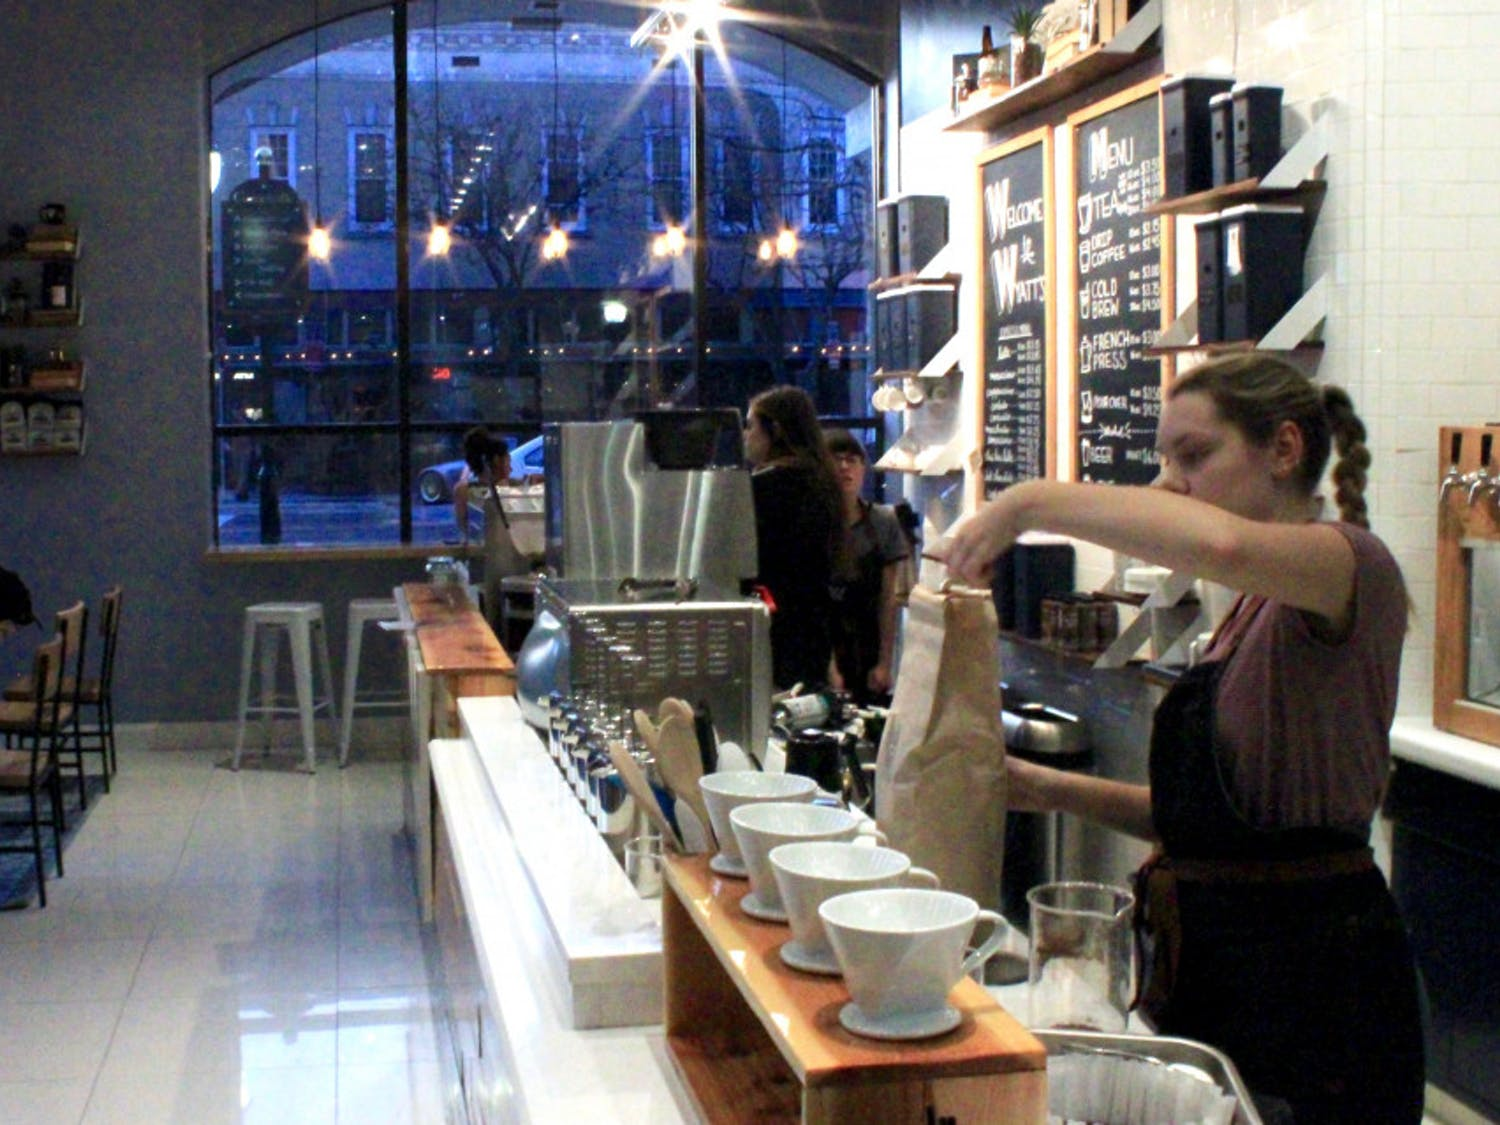 Emily Hart, a 20-year-old UF psychology student, scoops fresh coffee grounds from a bag on Sunday afternoon at Wyatt's Coffee's new downtown location at 202 SE Second Ave.